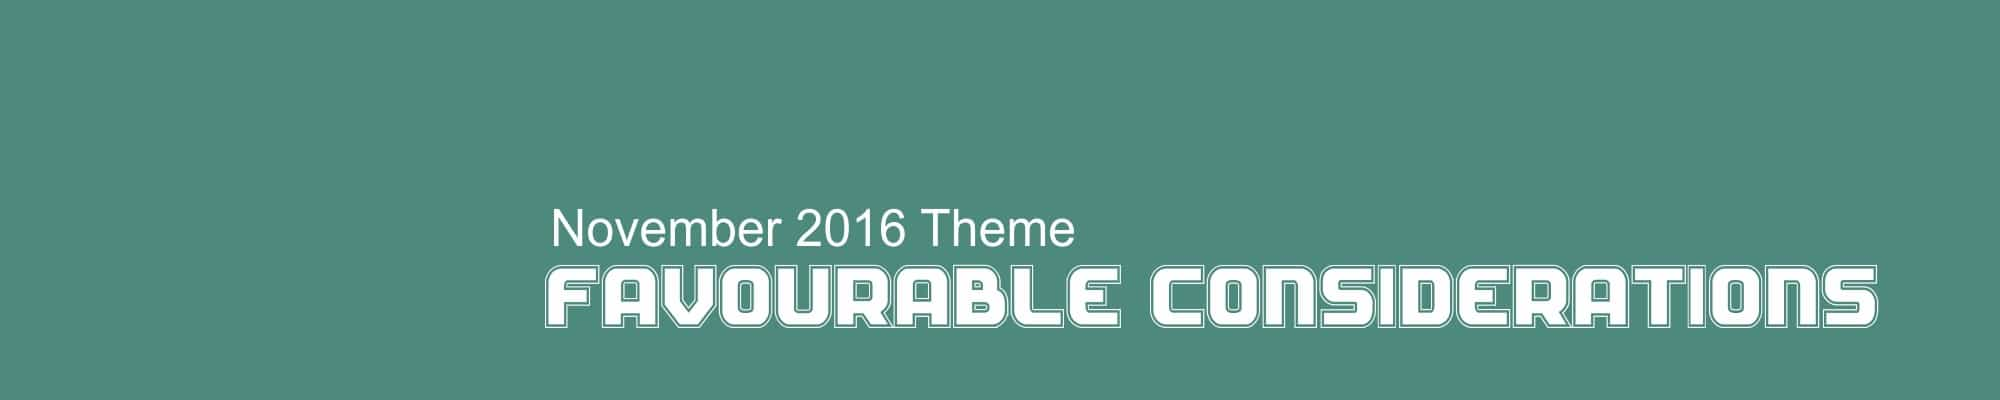 November 2016 Theme - Favourable Considerations